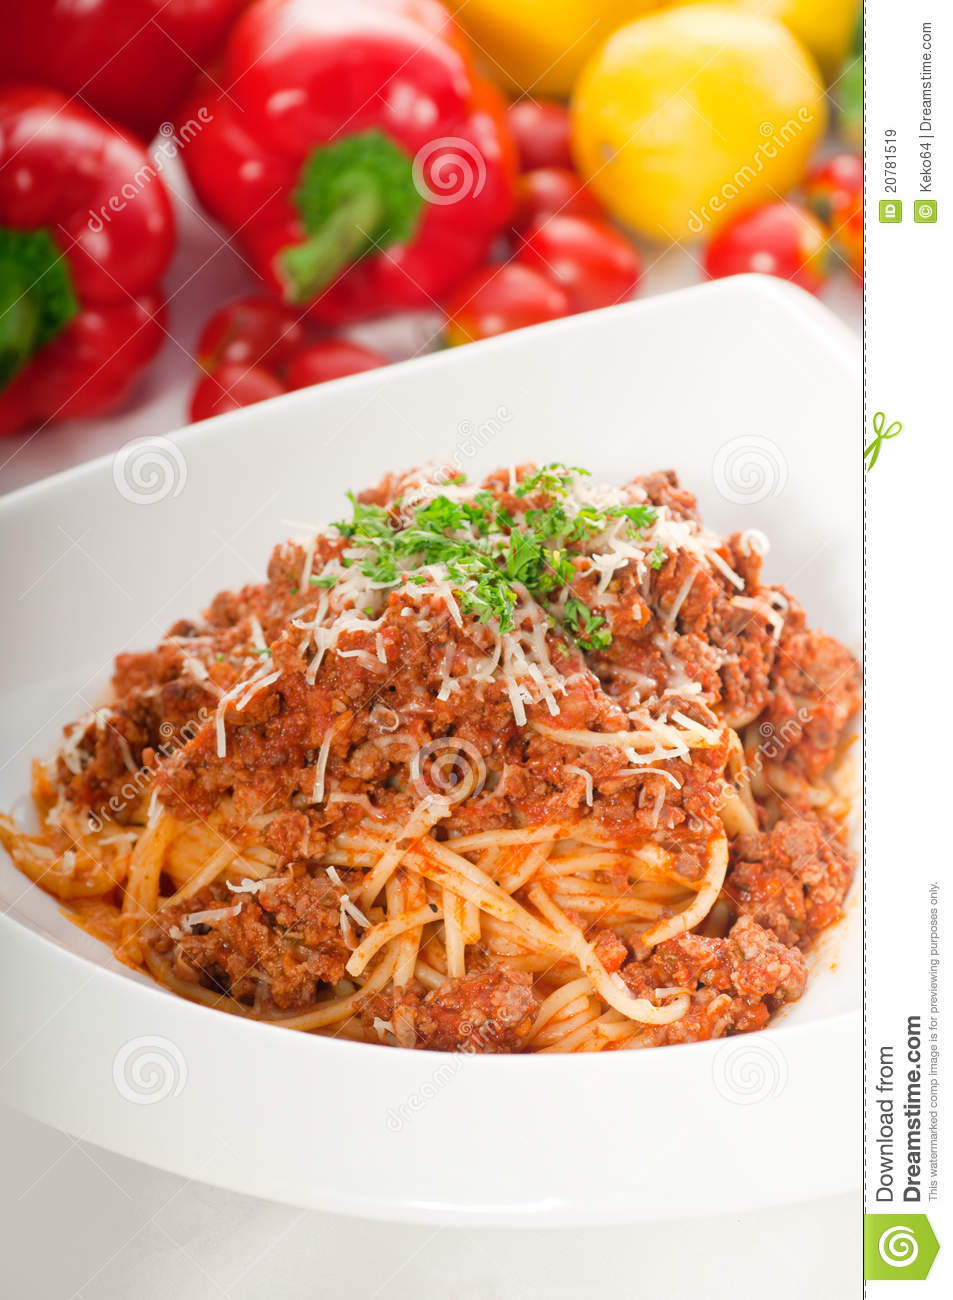 Italian classic spaghetti with bolognese sauce and fresh vegetables on ...